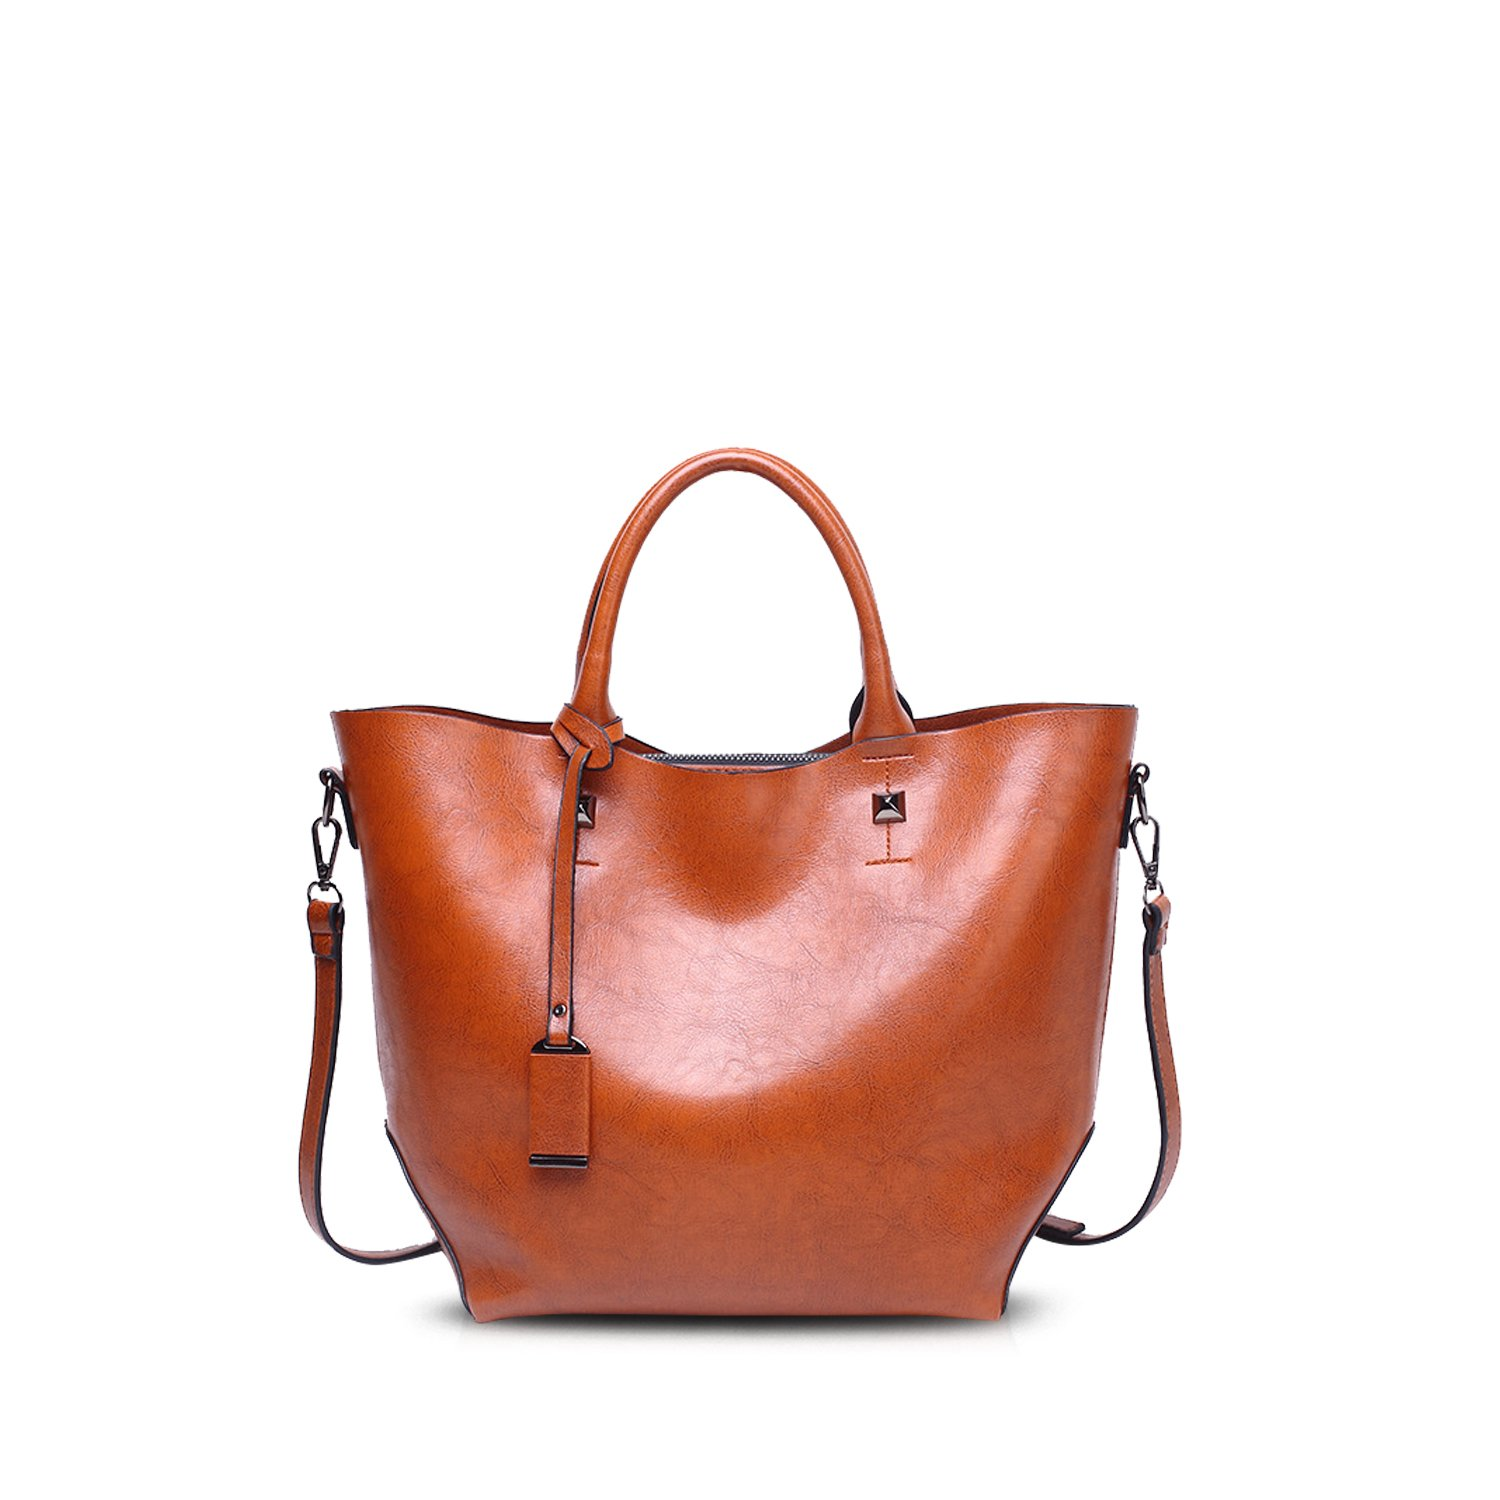 NICOLE/&DORIS /él/égant Femme Sacs /à main Bandouli/ère Tote Crossbody Bag Sacs port/és main Sacs port/és /épaule Messenger Grand Bag PU Marron